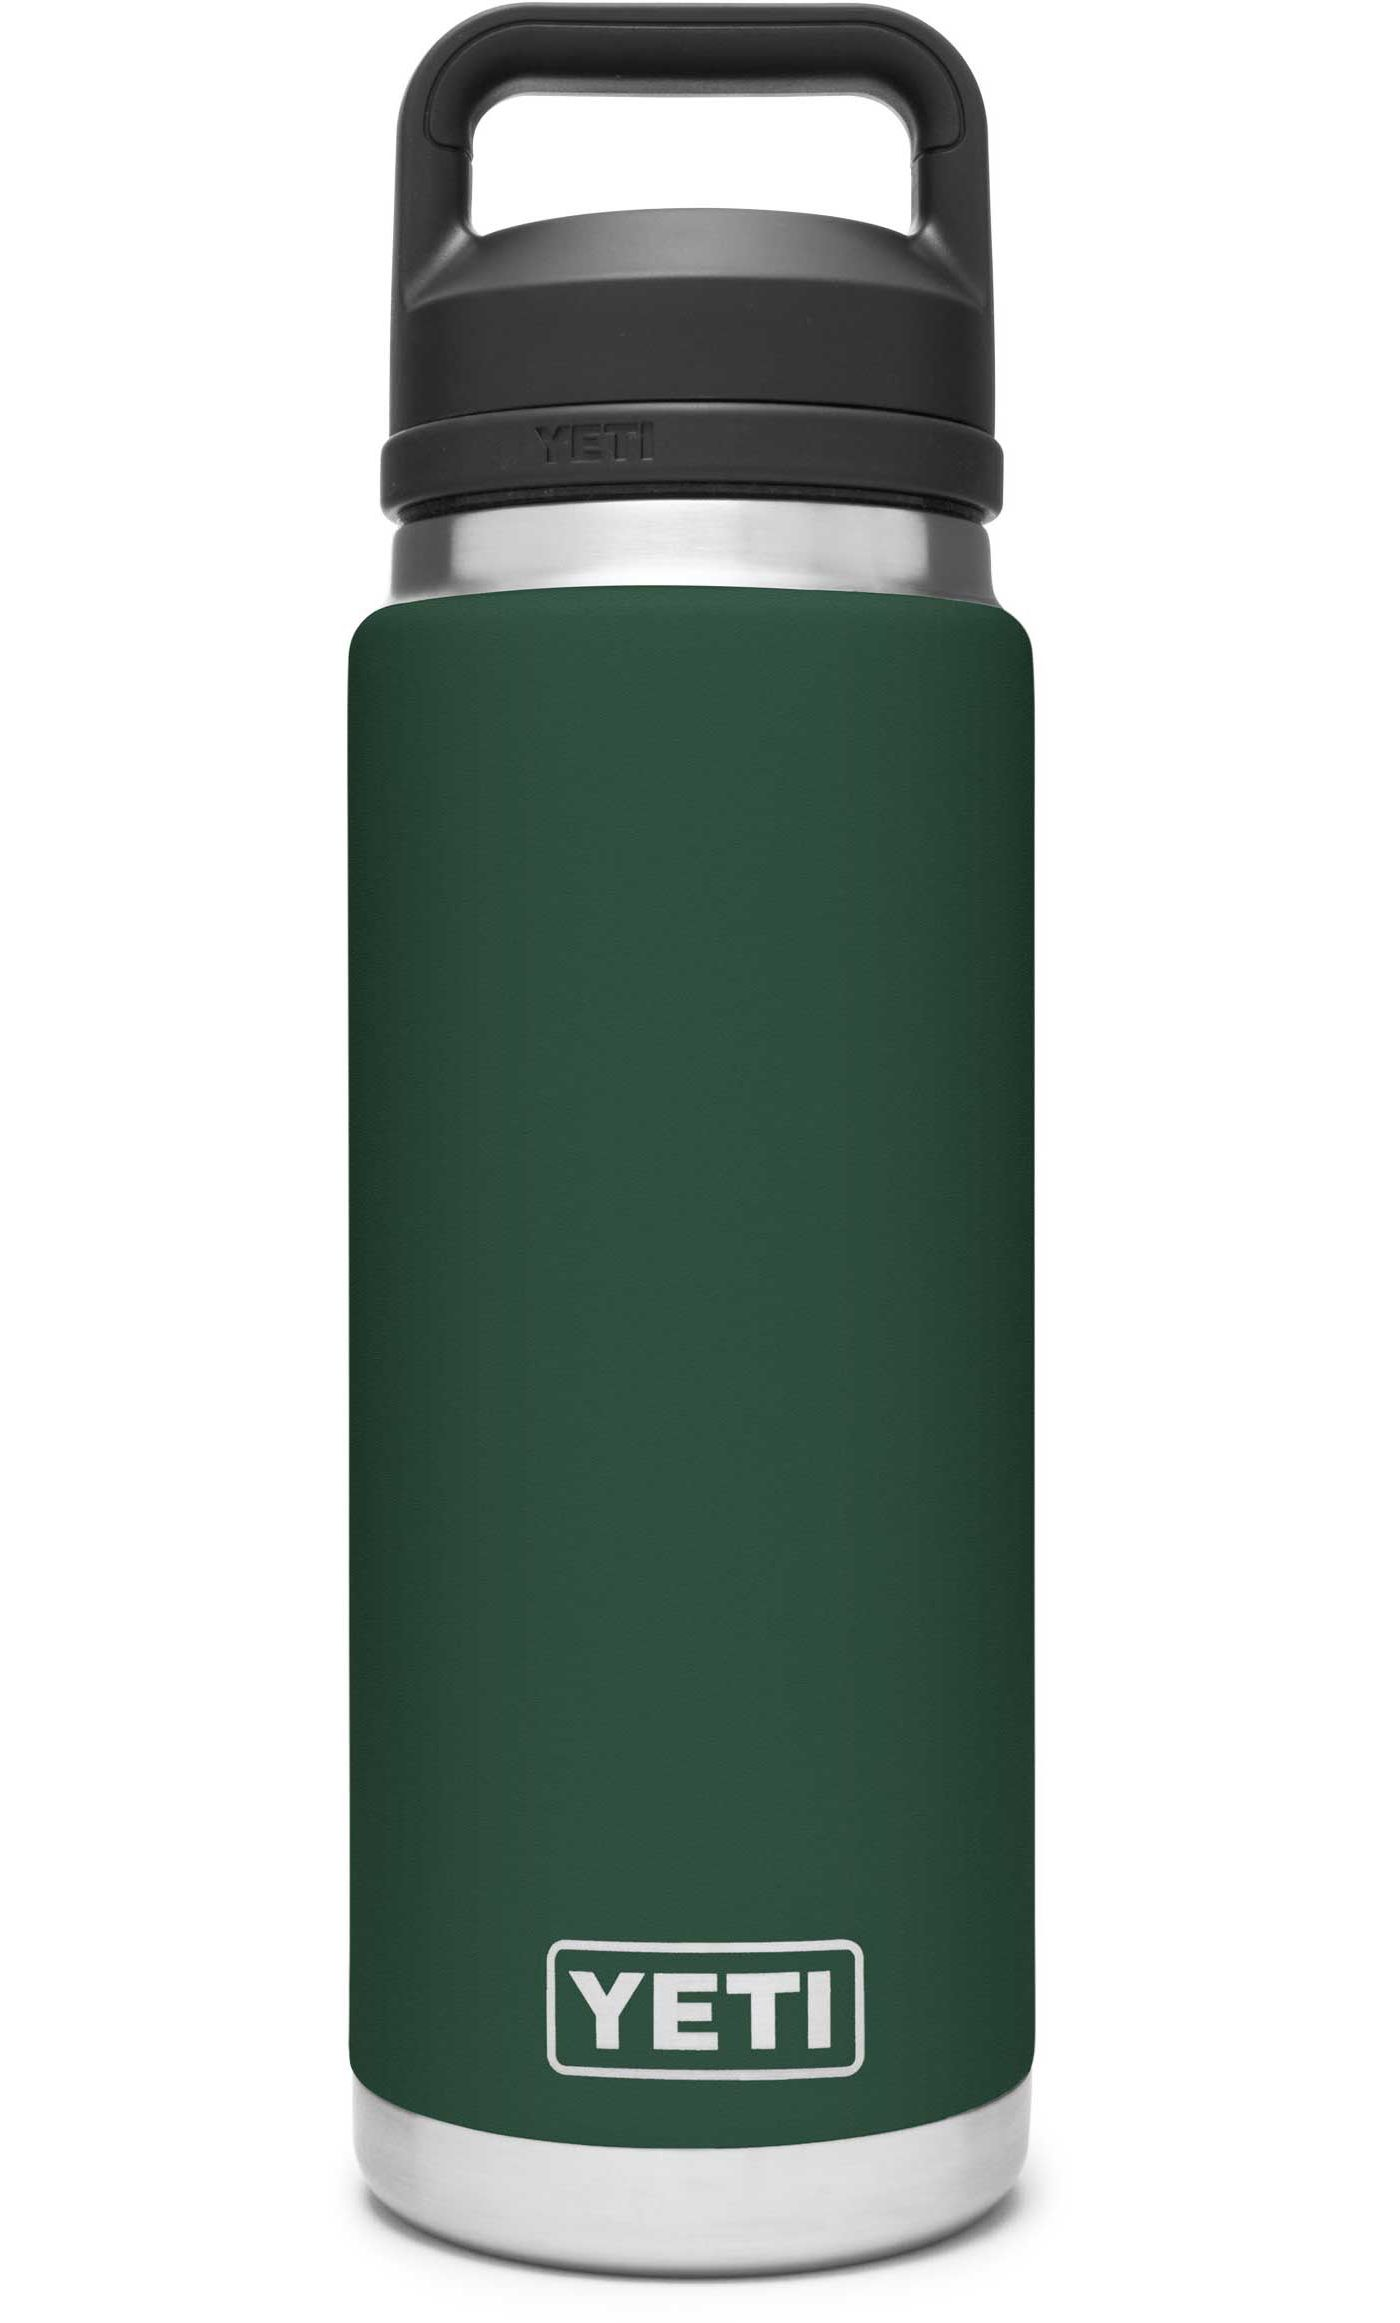 YETI 26 oz. Rambler Bottle with Chug Cap